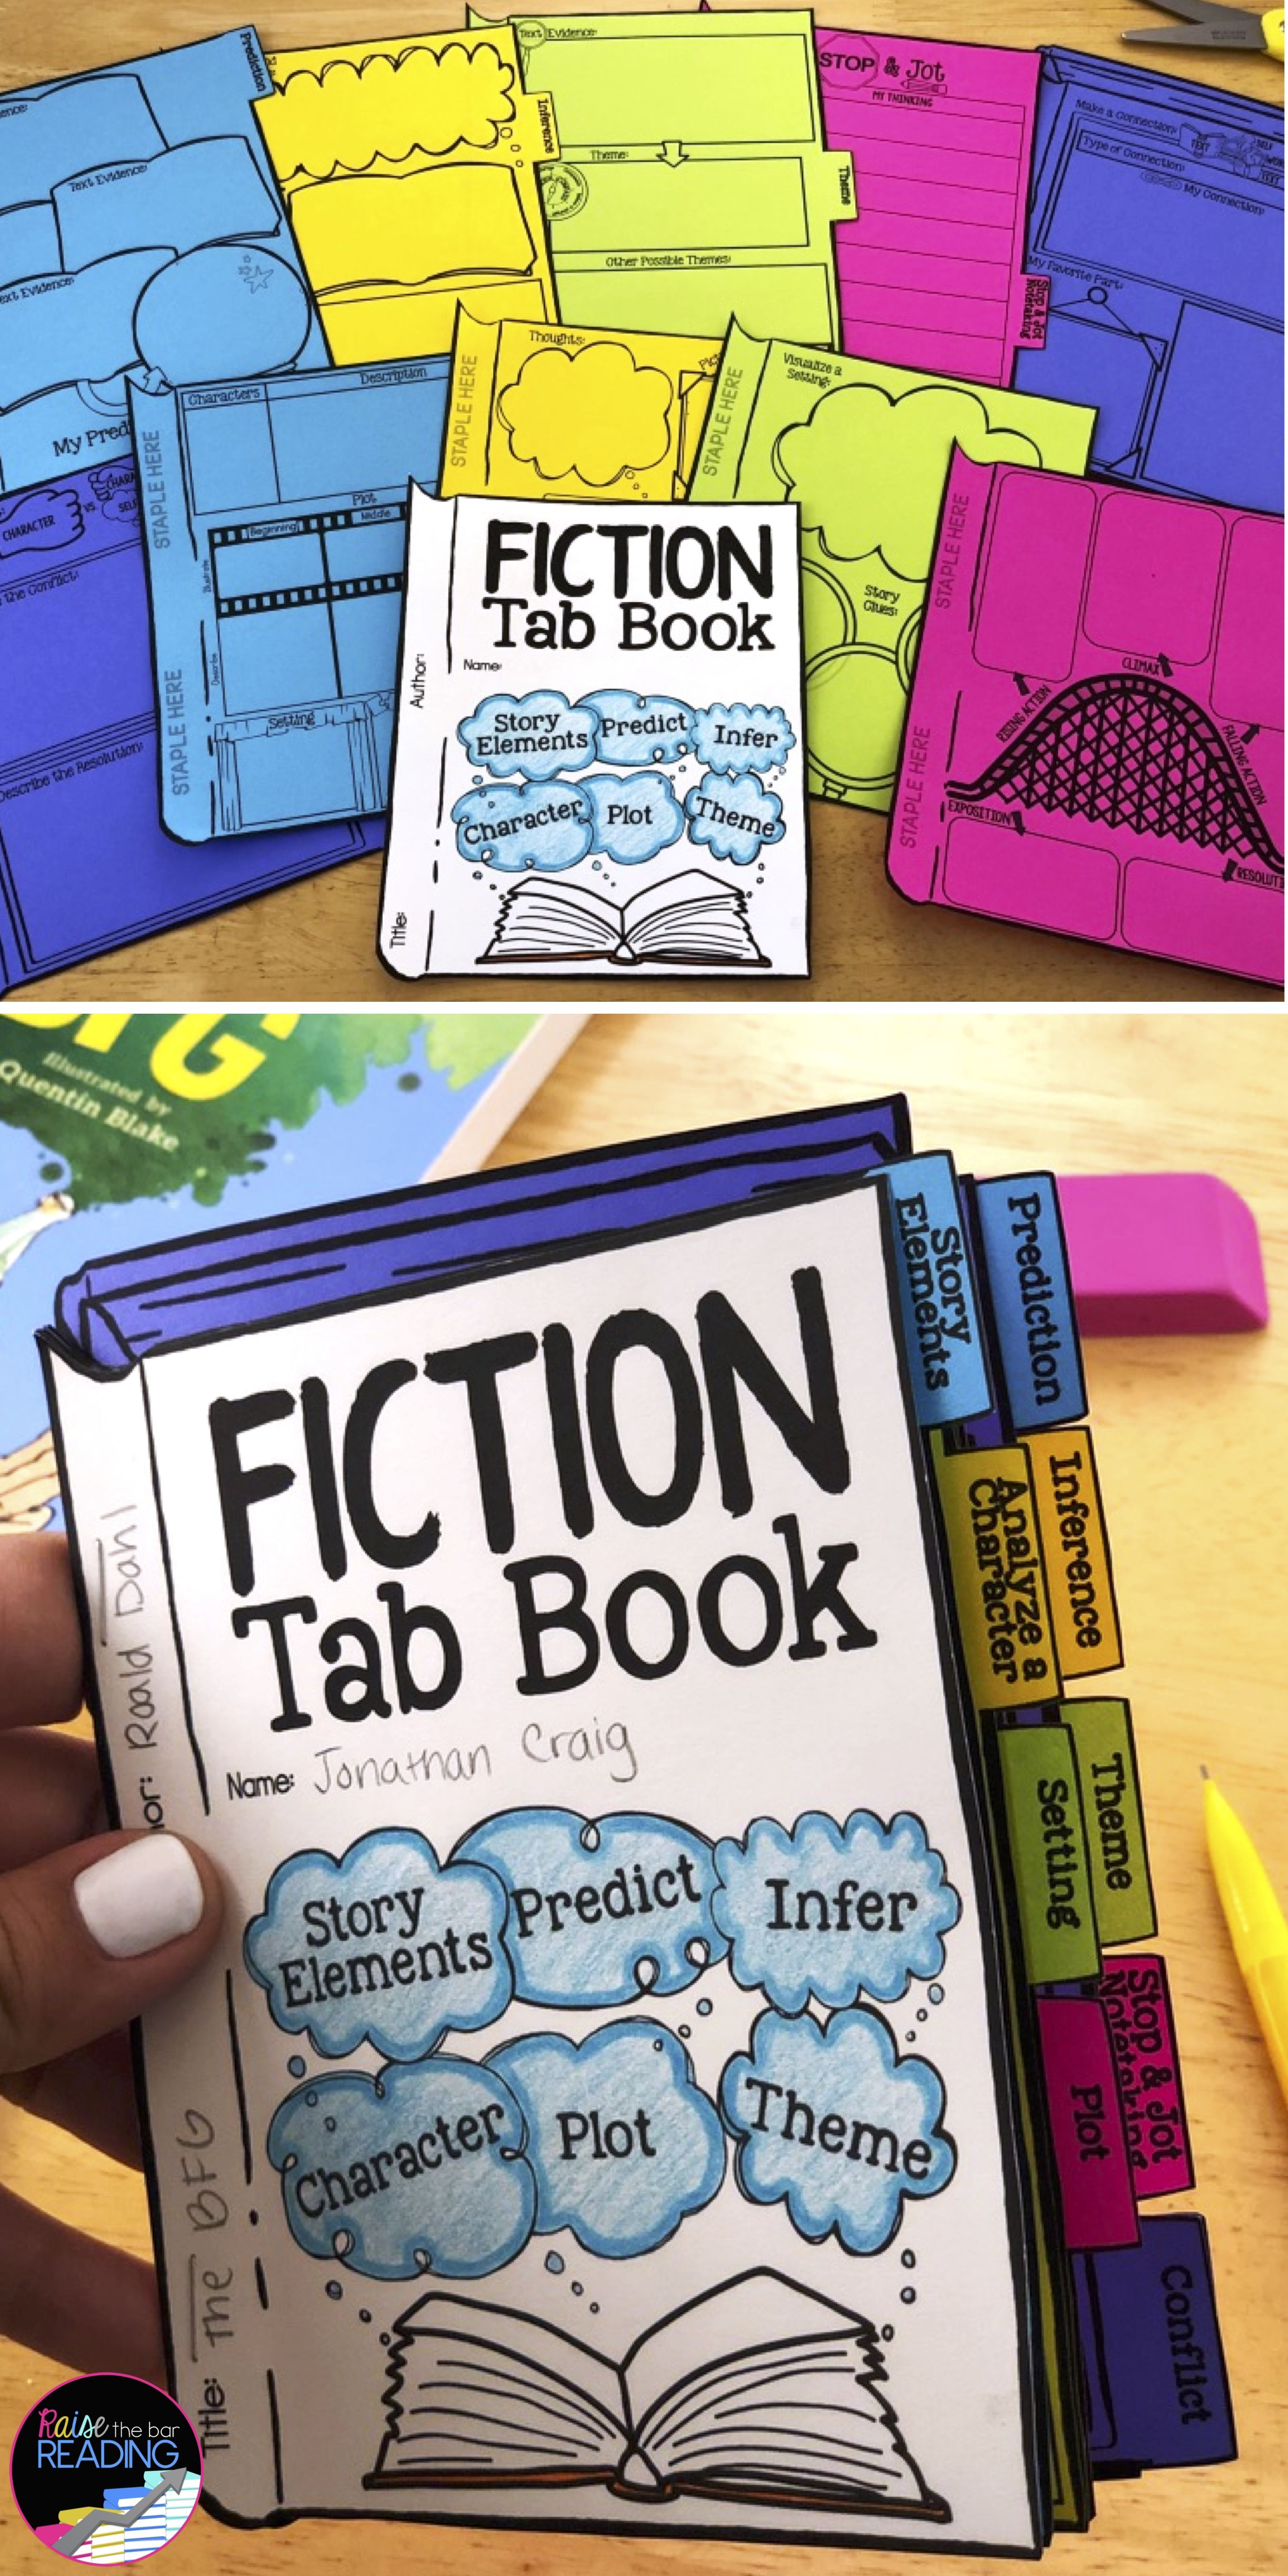 Fiction Tab Book Fiction Reading Activities Fiction